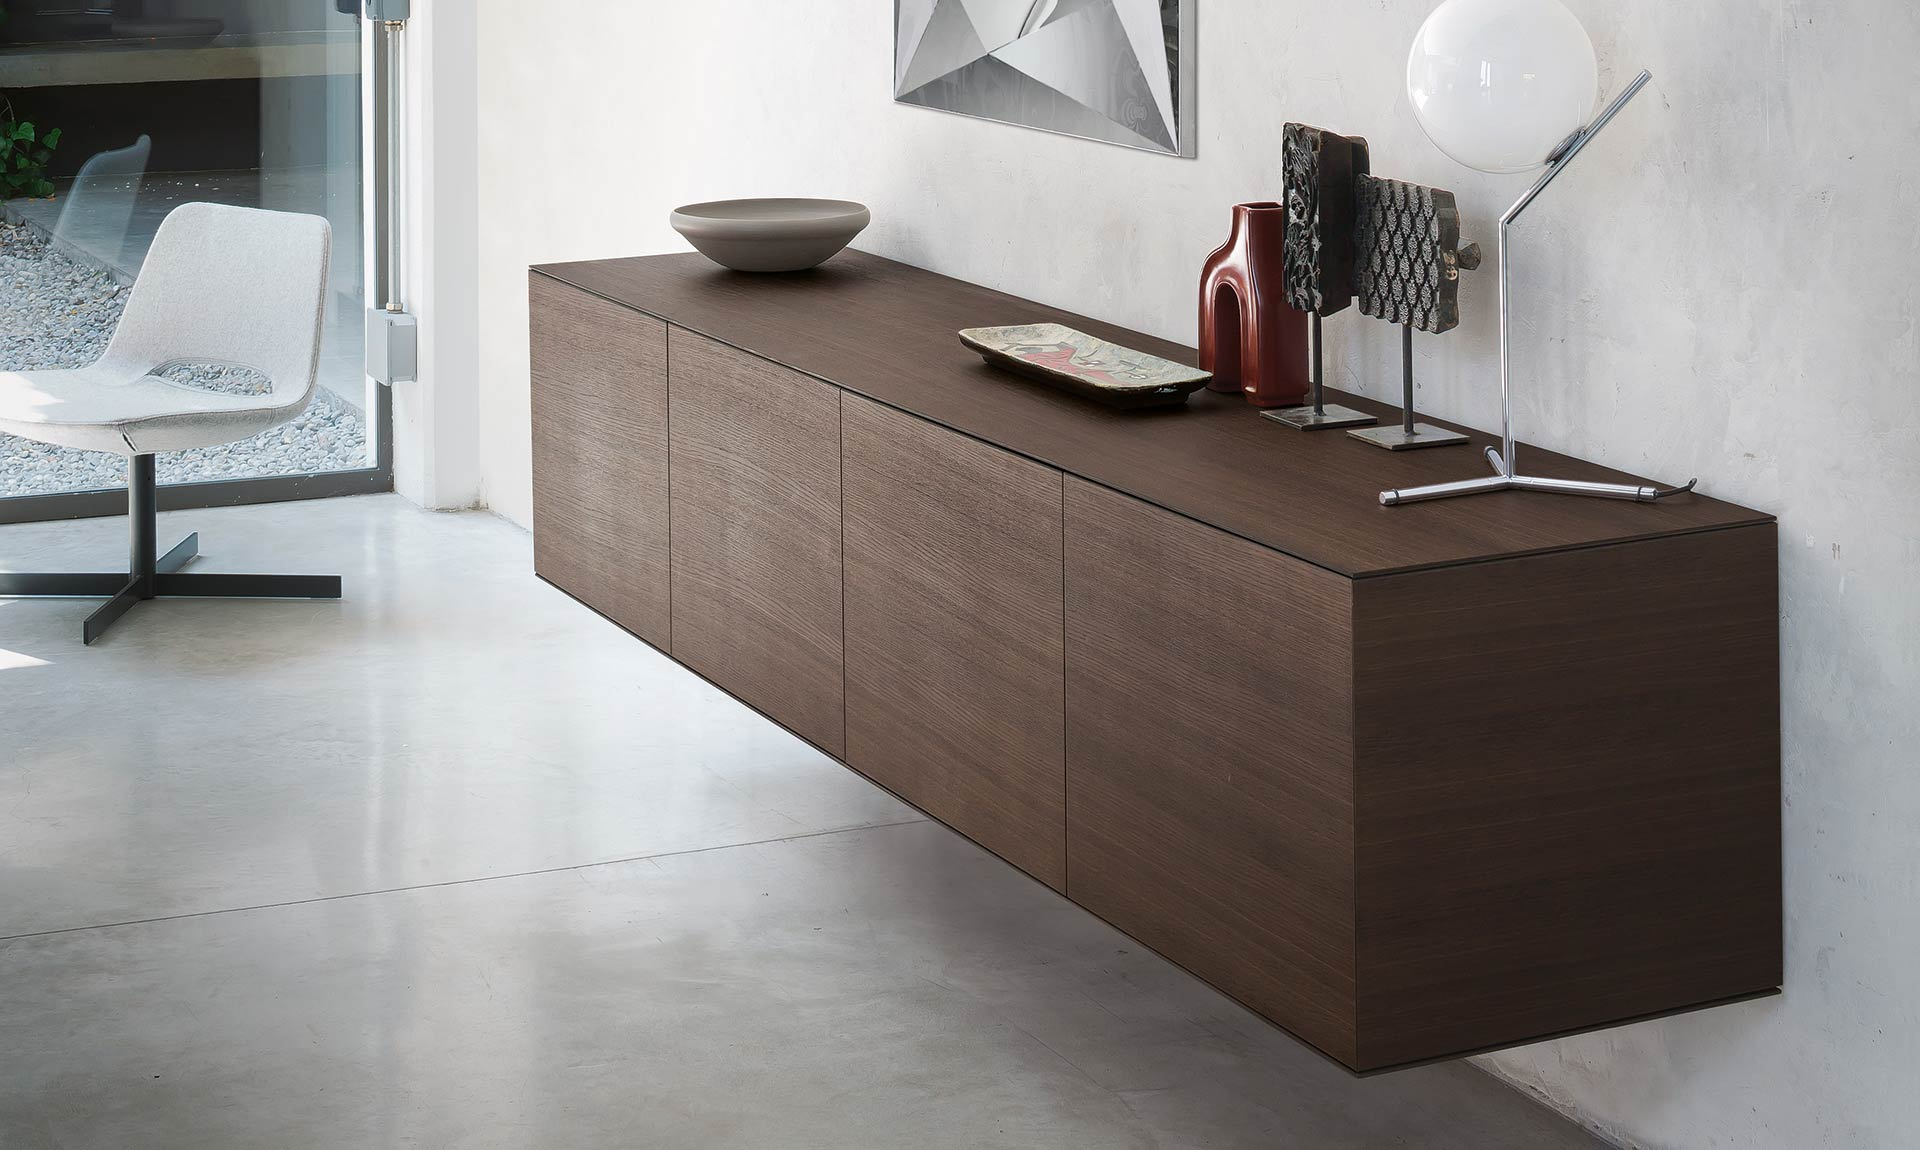 Italian Design Modern sideboard CUBRIC steel diamond by Riflessi-sideboard-wood-linea-riflessi